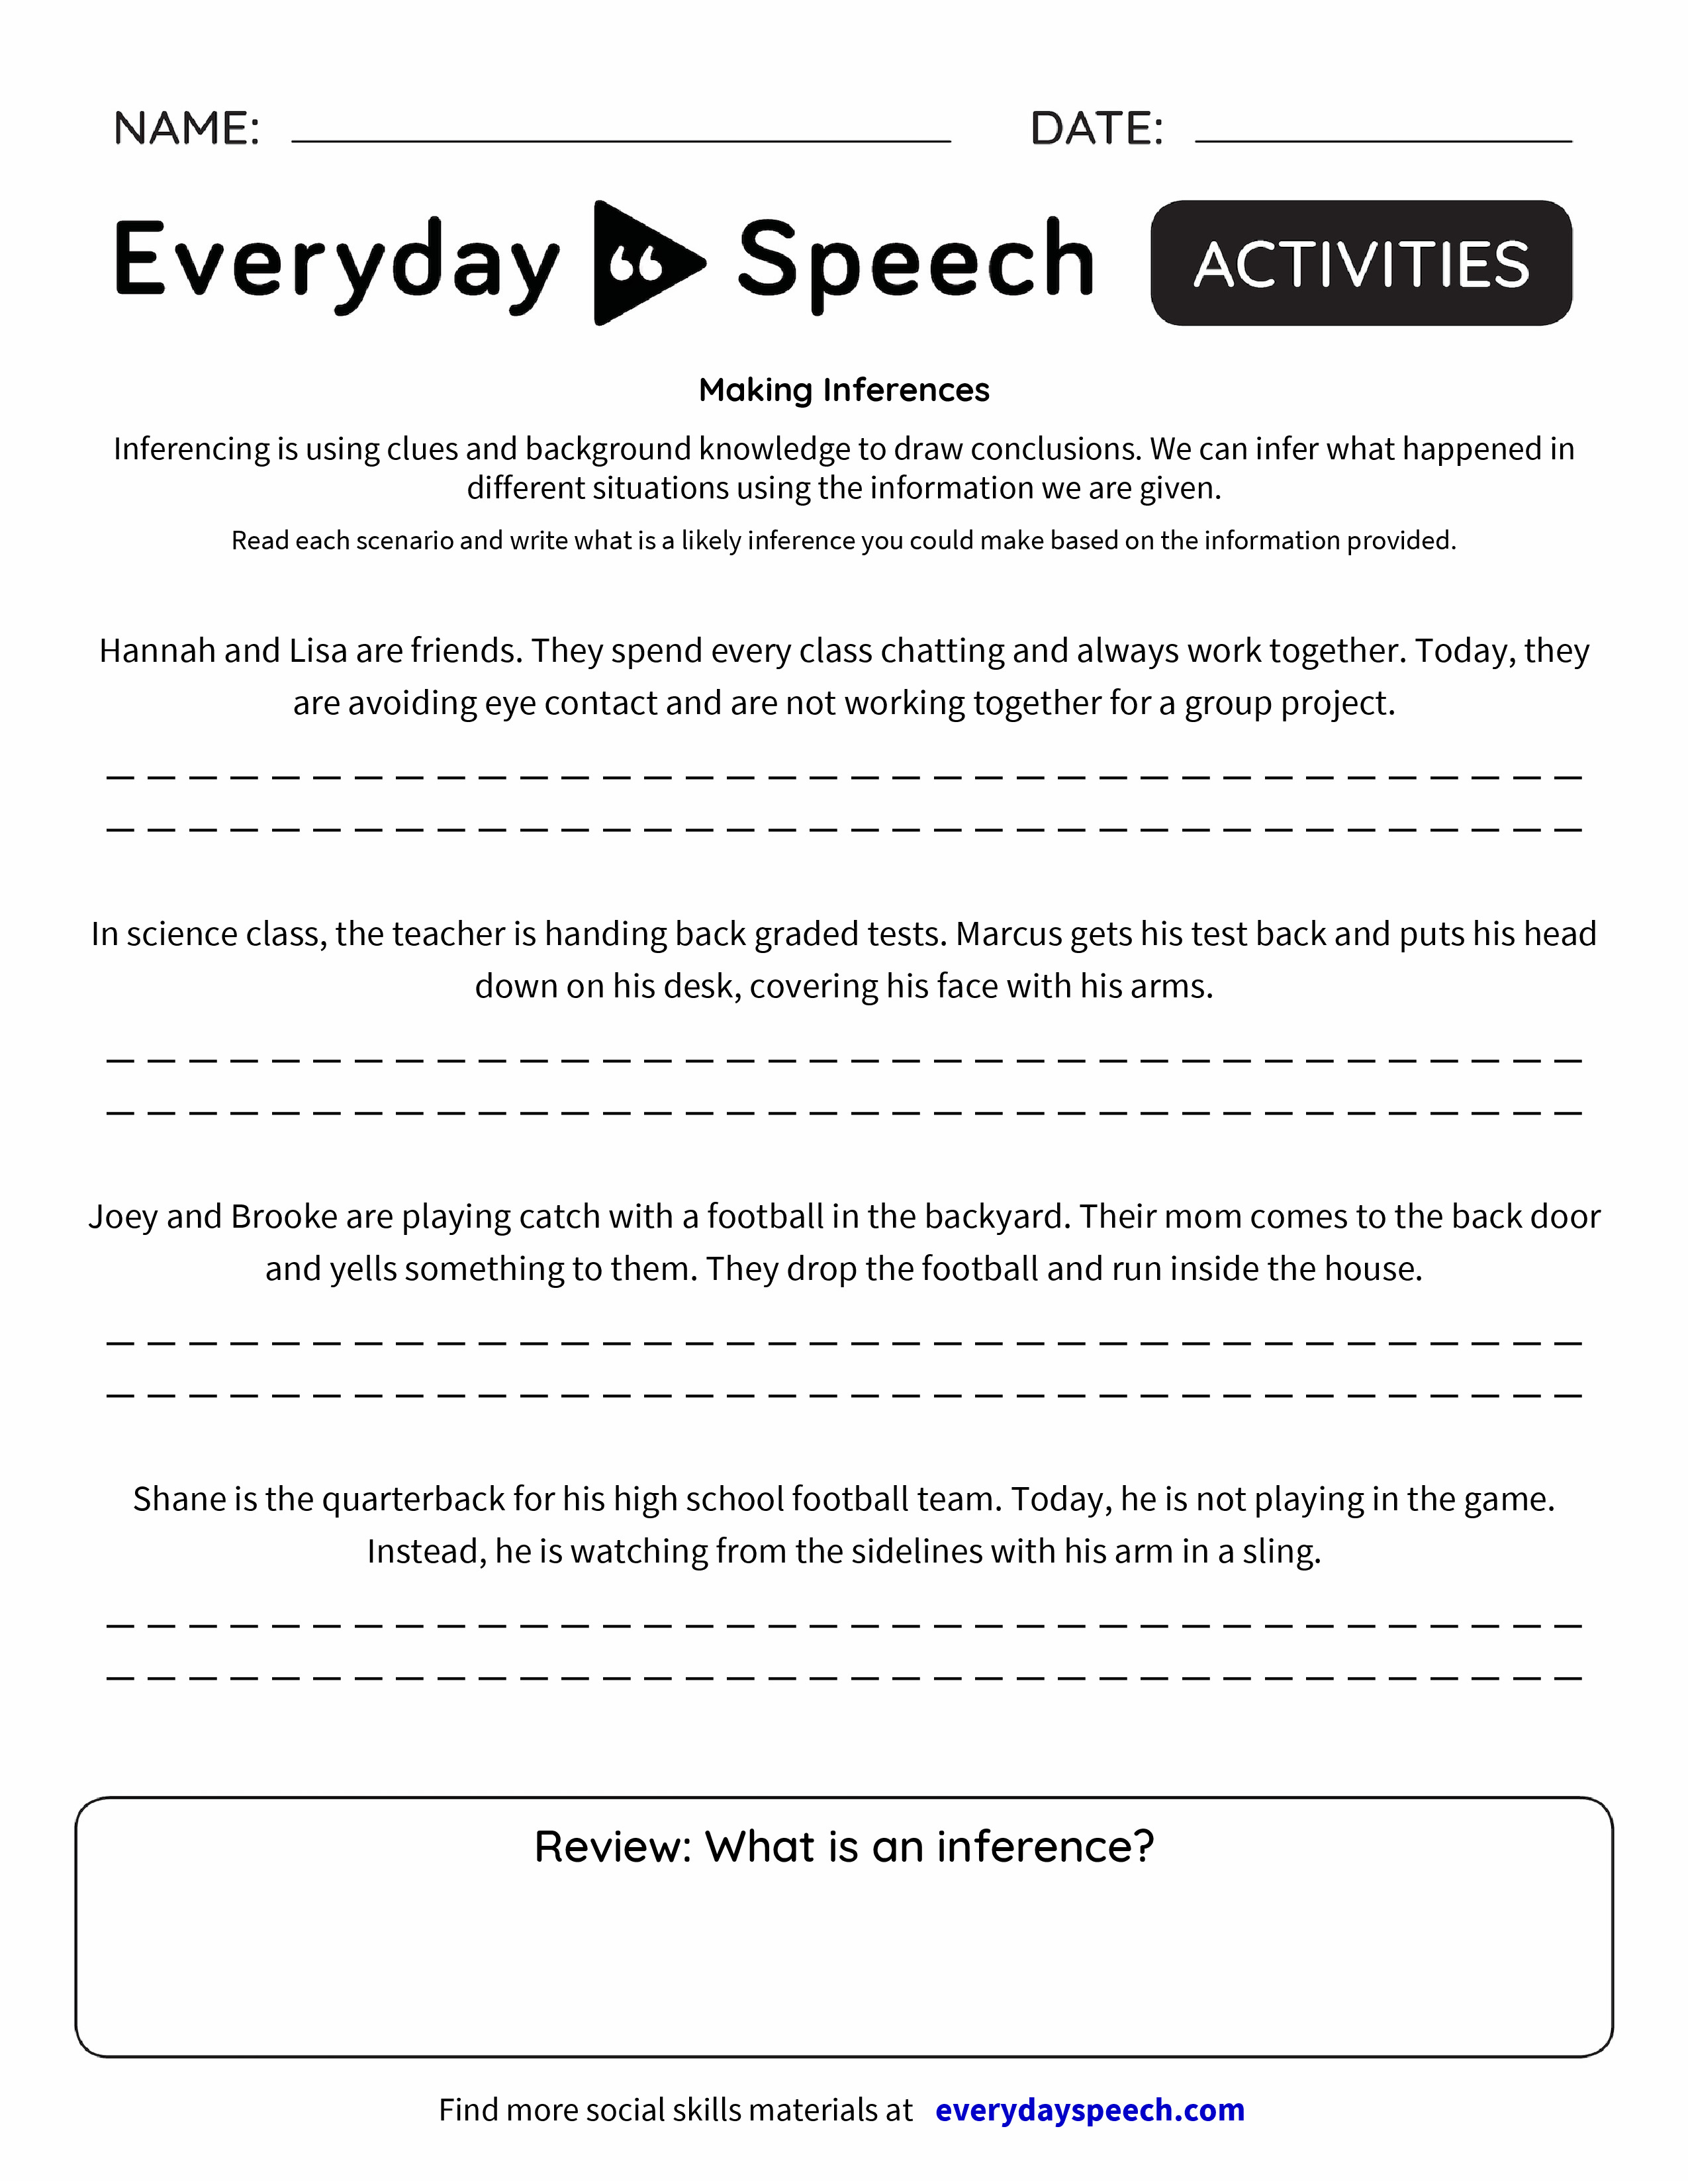 Worksheets Inferences Worksheet 2 making inferences everyday speech preview